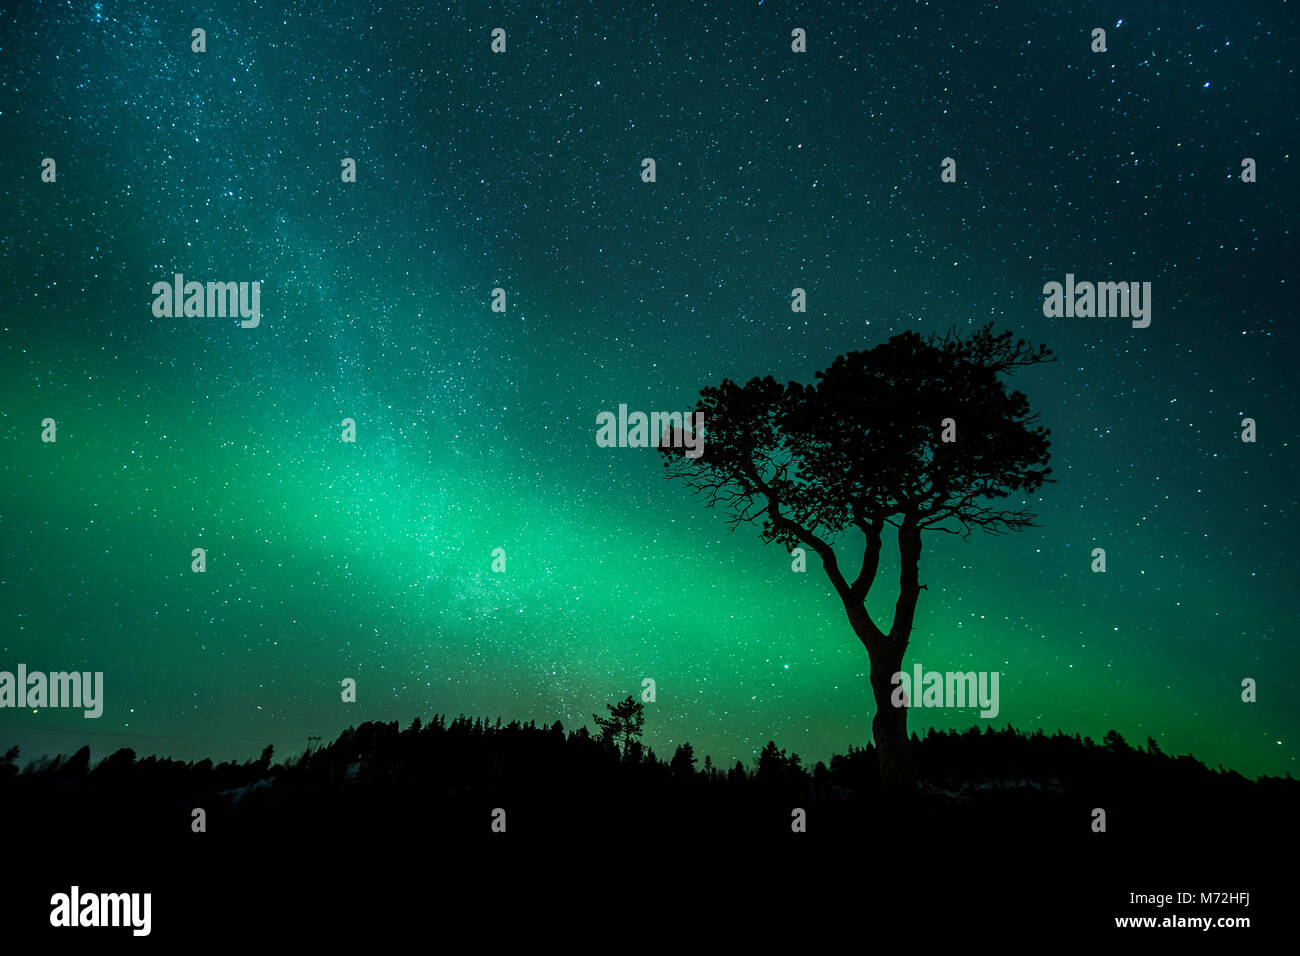 Milky way and a Pinetree - Stock Image